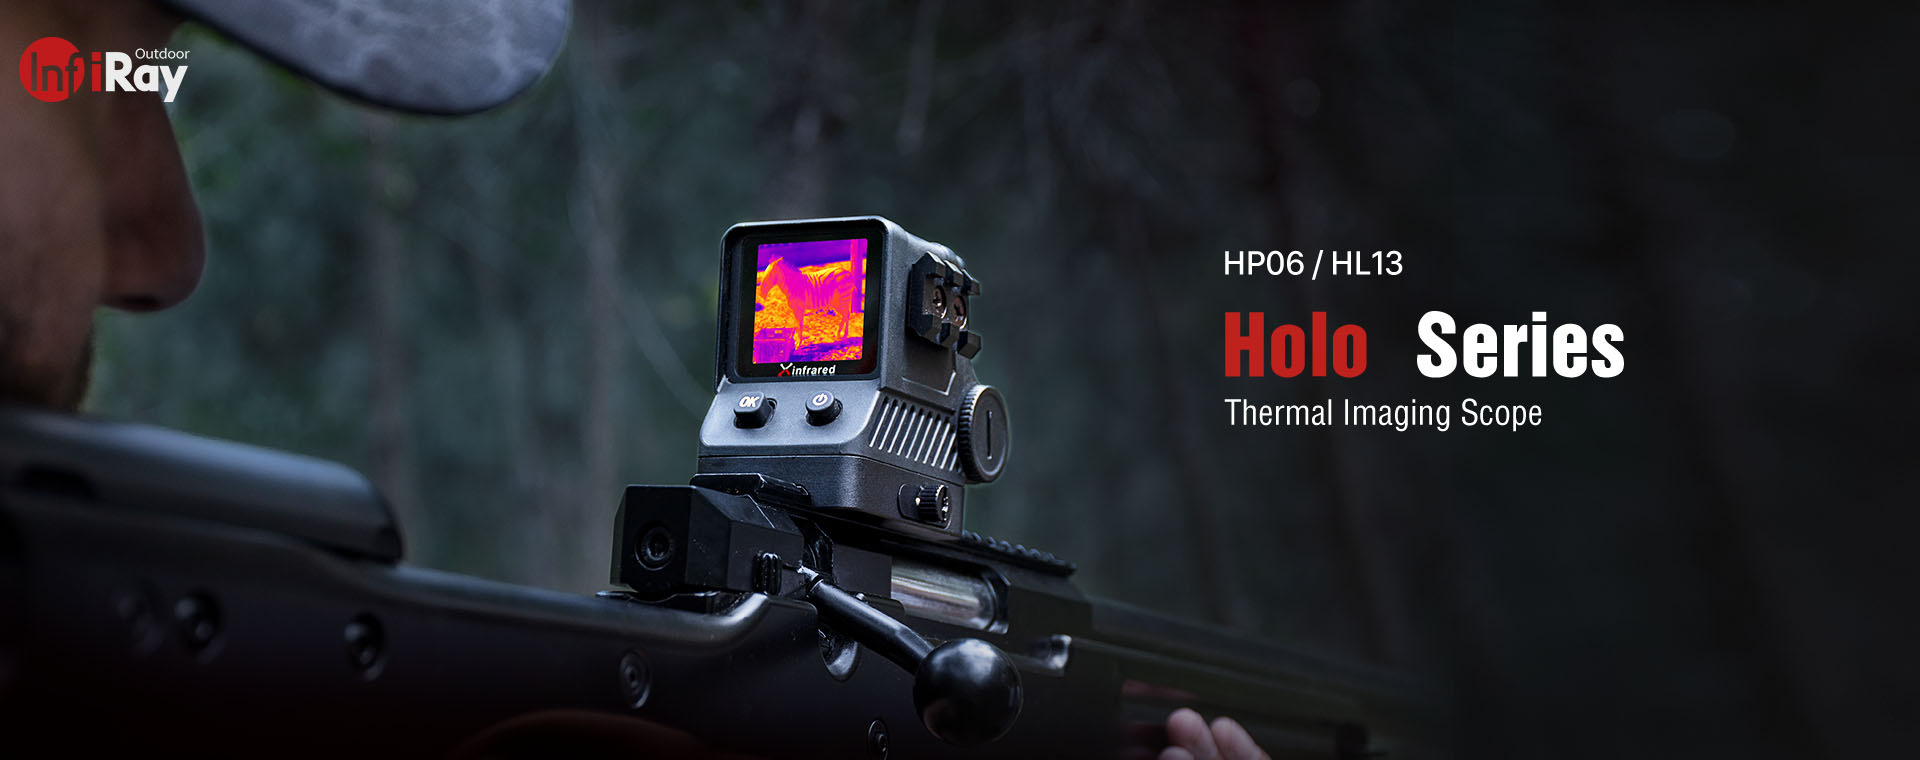 Thermal Imaging Riflescope Holo Series